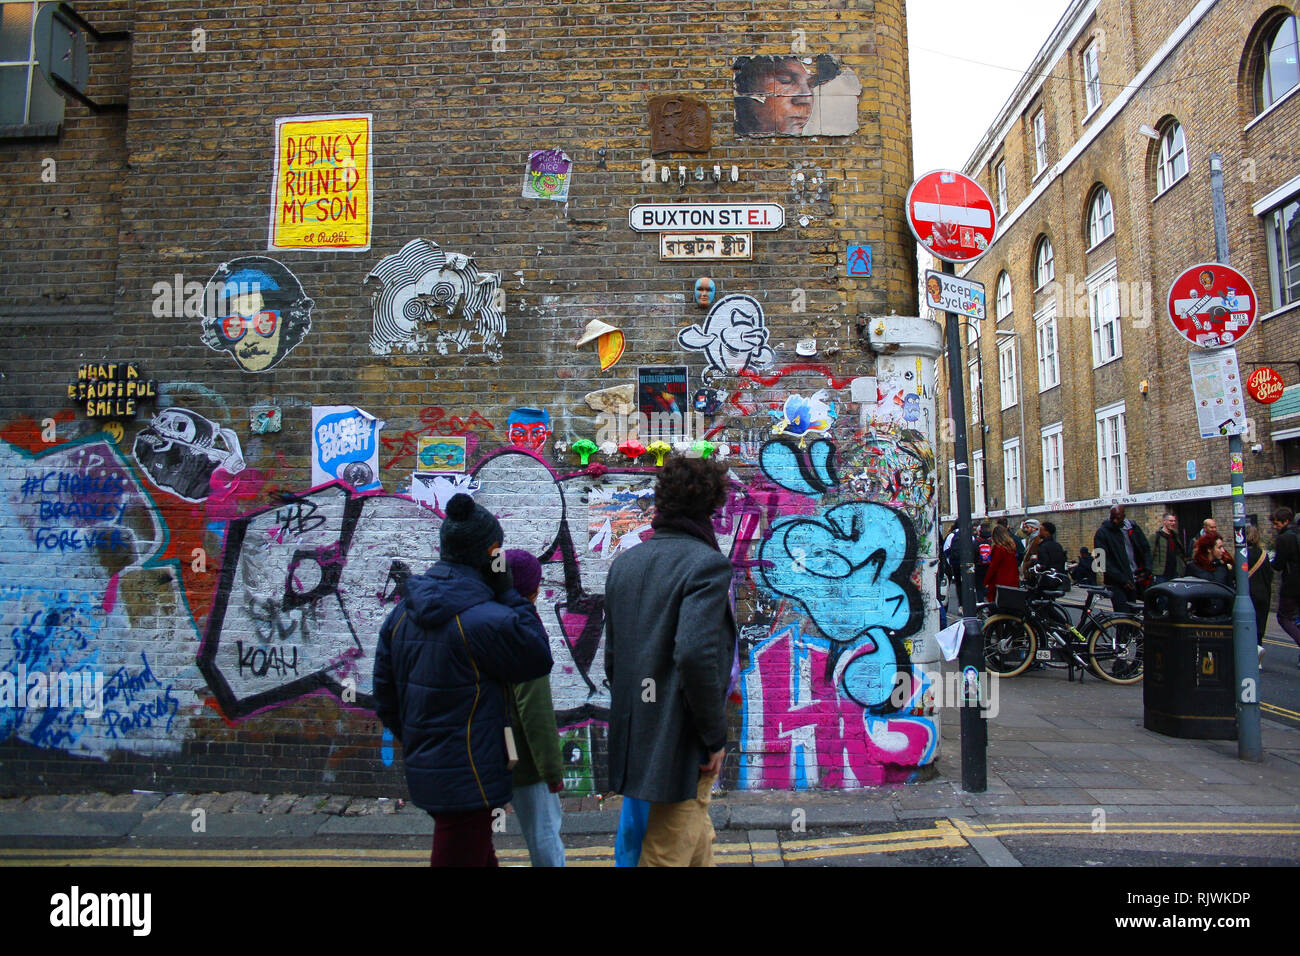 Street art, Brick Lane area, Shoreditch, London Stock Photo